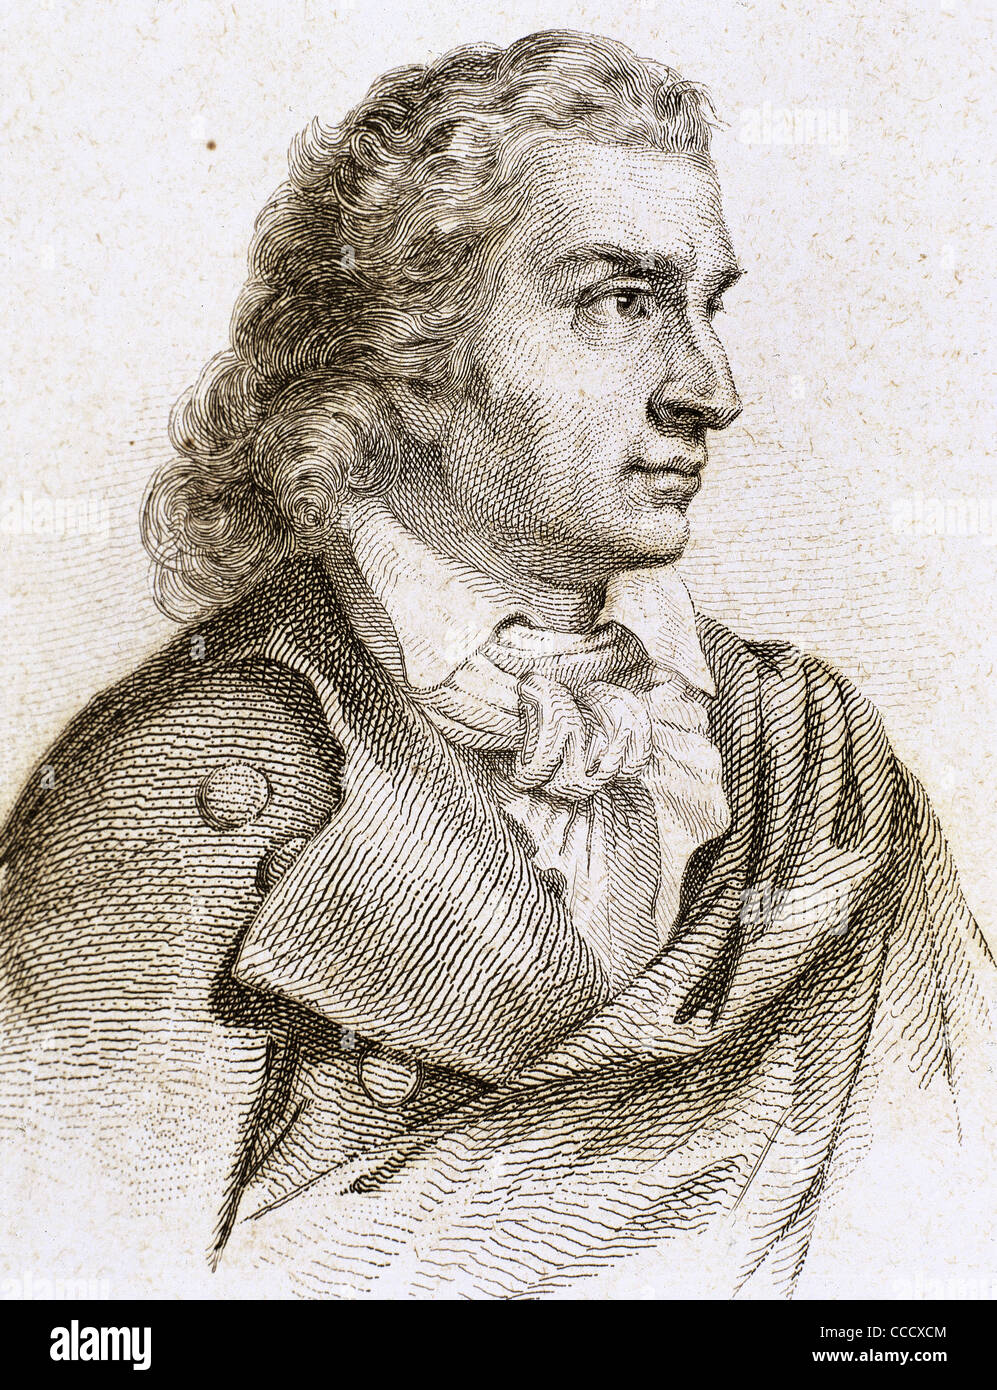 Friedrich Schiller (1759-1805). German poet, philosopher, historian, and playwright. Engraving. - Stock Image